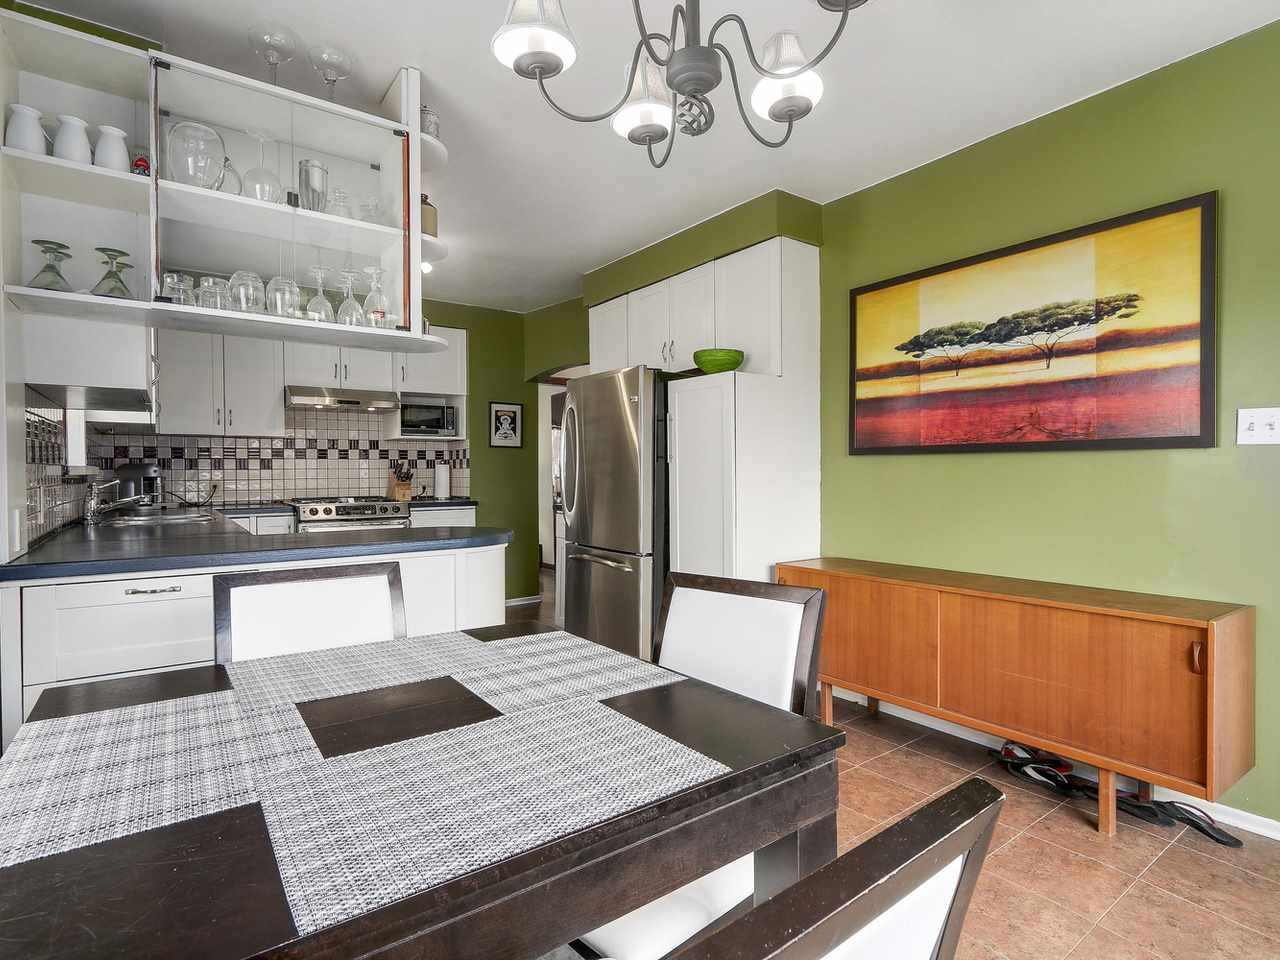 Photo 10: 3114 TURNER Street in Vancouver: Renfrew VE House for sale (Vancouver East)  : MLS® # R2147724